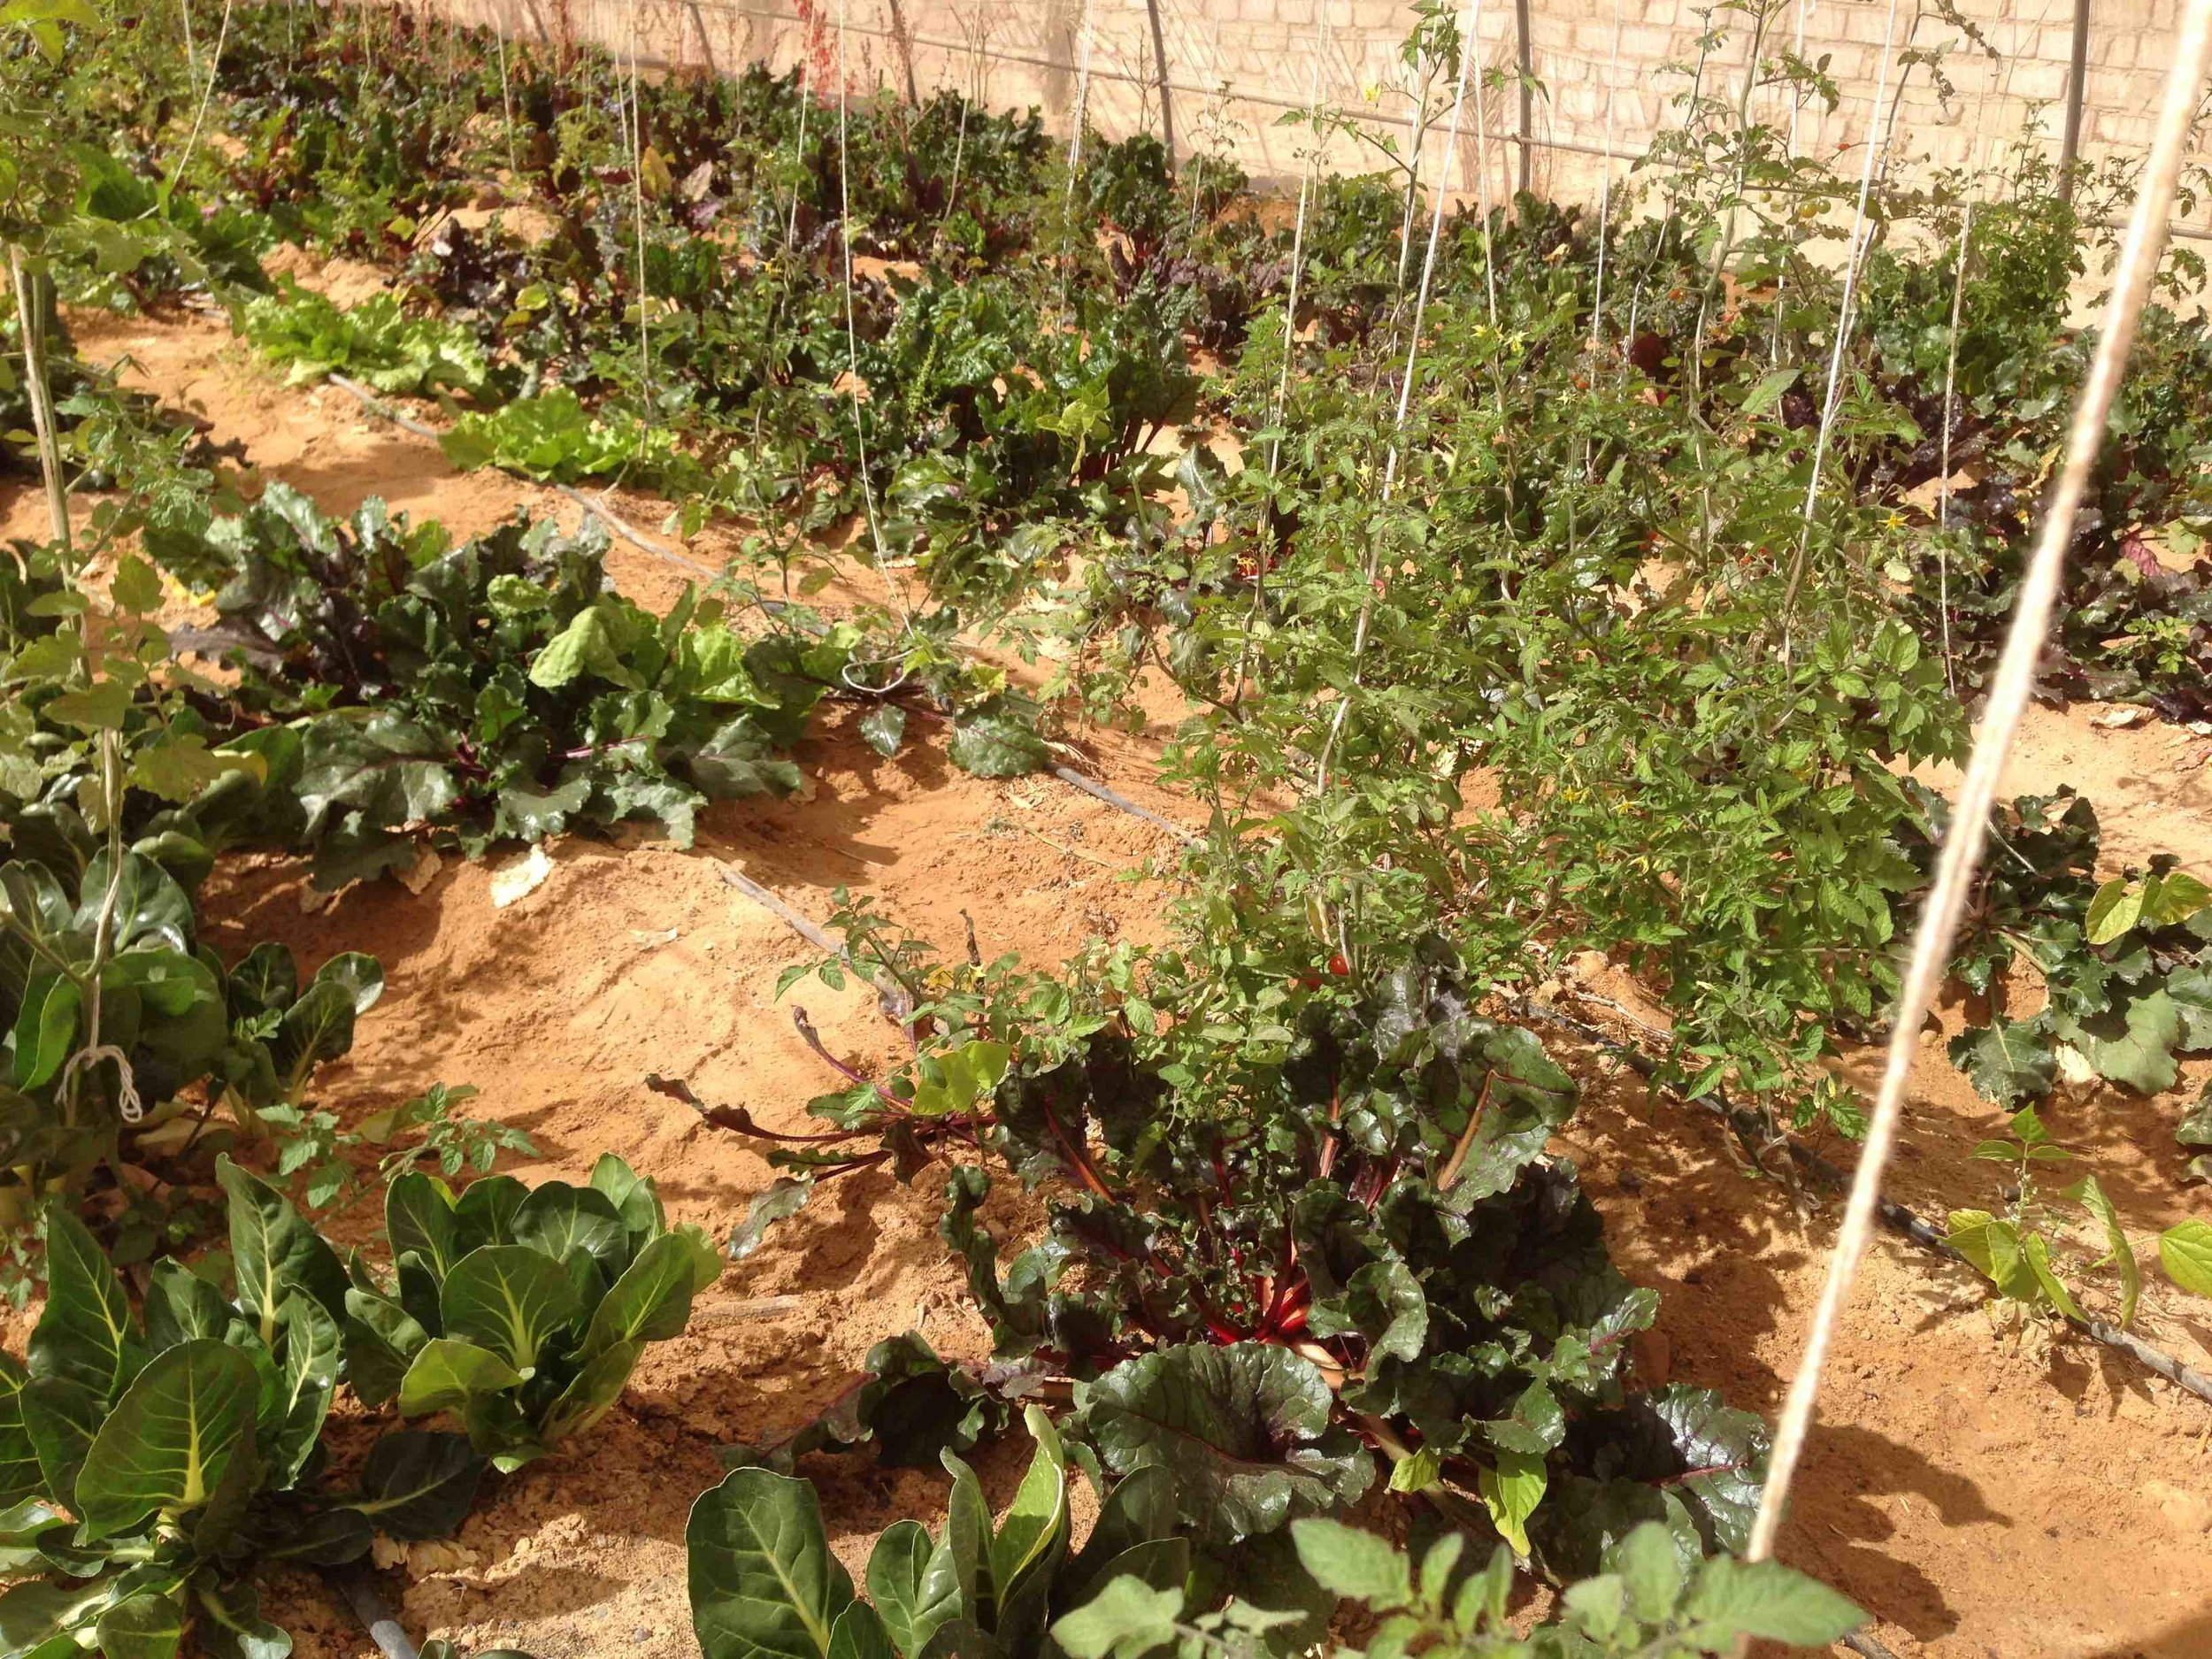 Growing vegetables in the sand